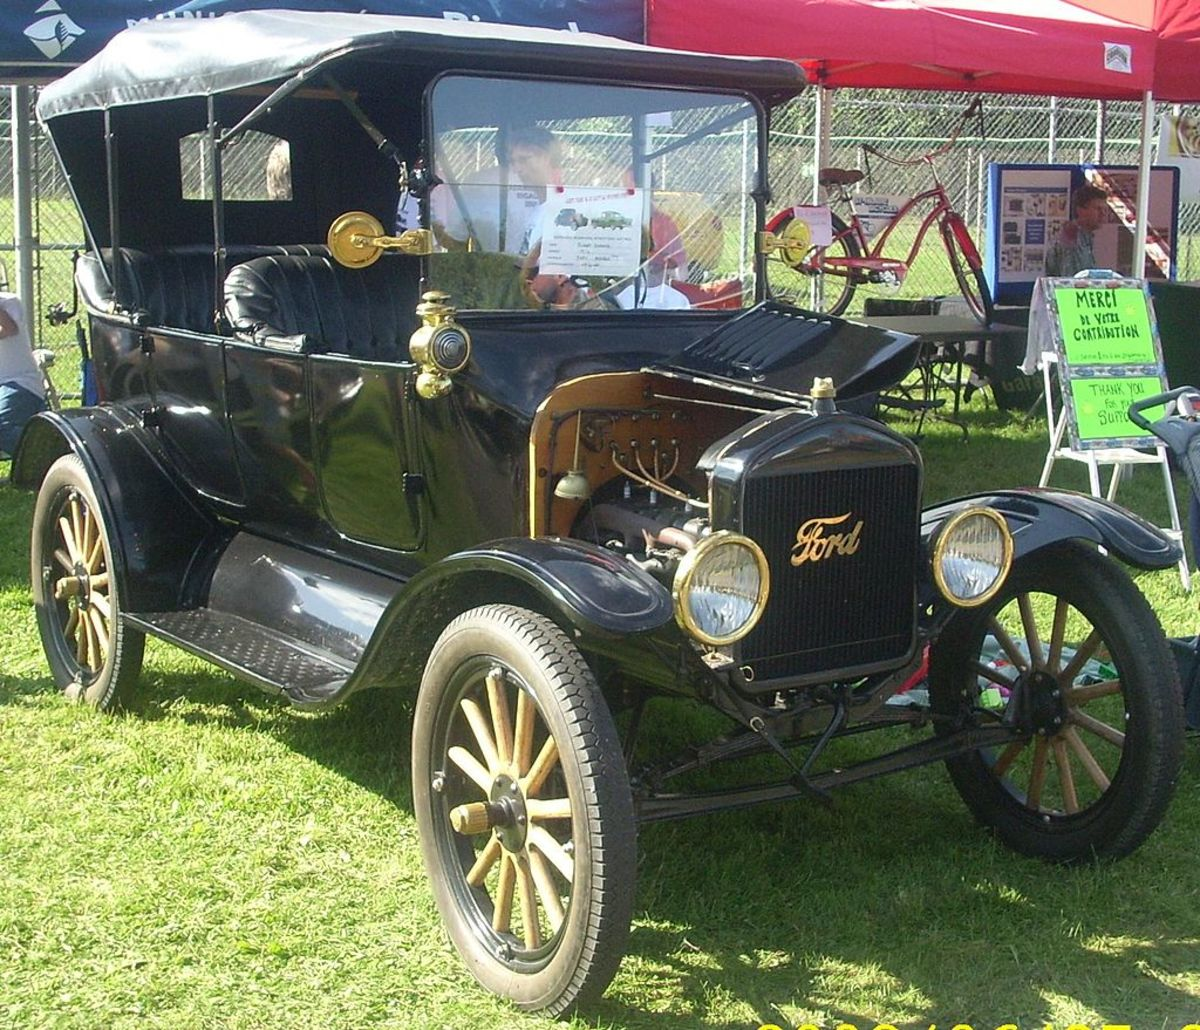 This 1916 Model T still had some brass fixtures but not as much as earlier models. In later years, manufacturing methods improved and the car shed its brass frills. The price went lower and lower -- to under $300.